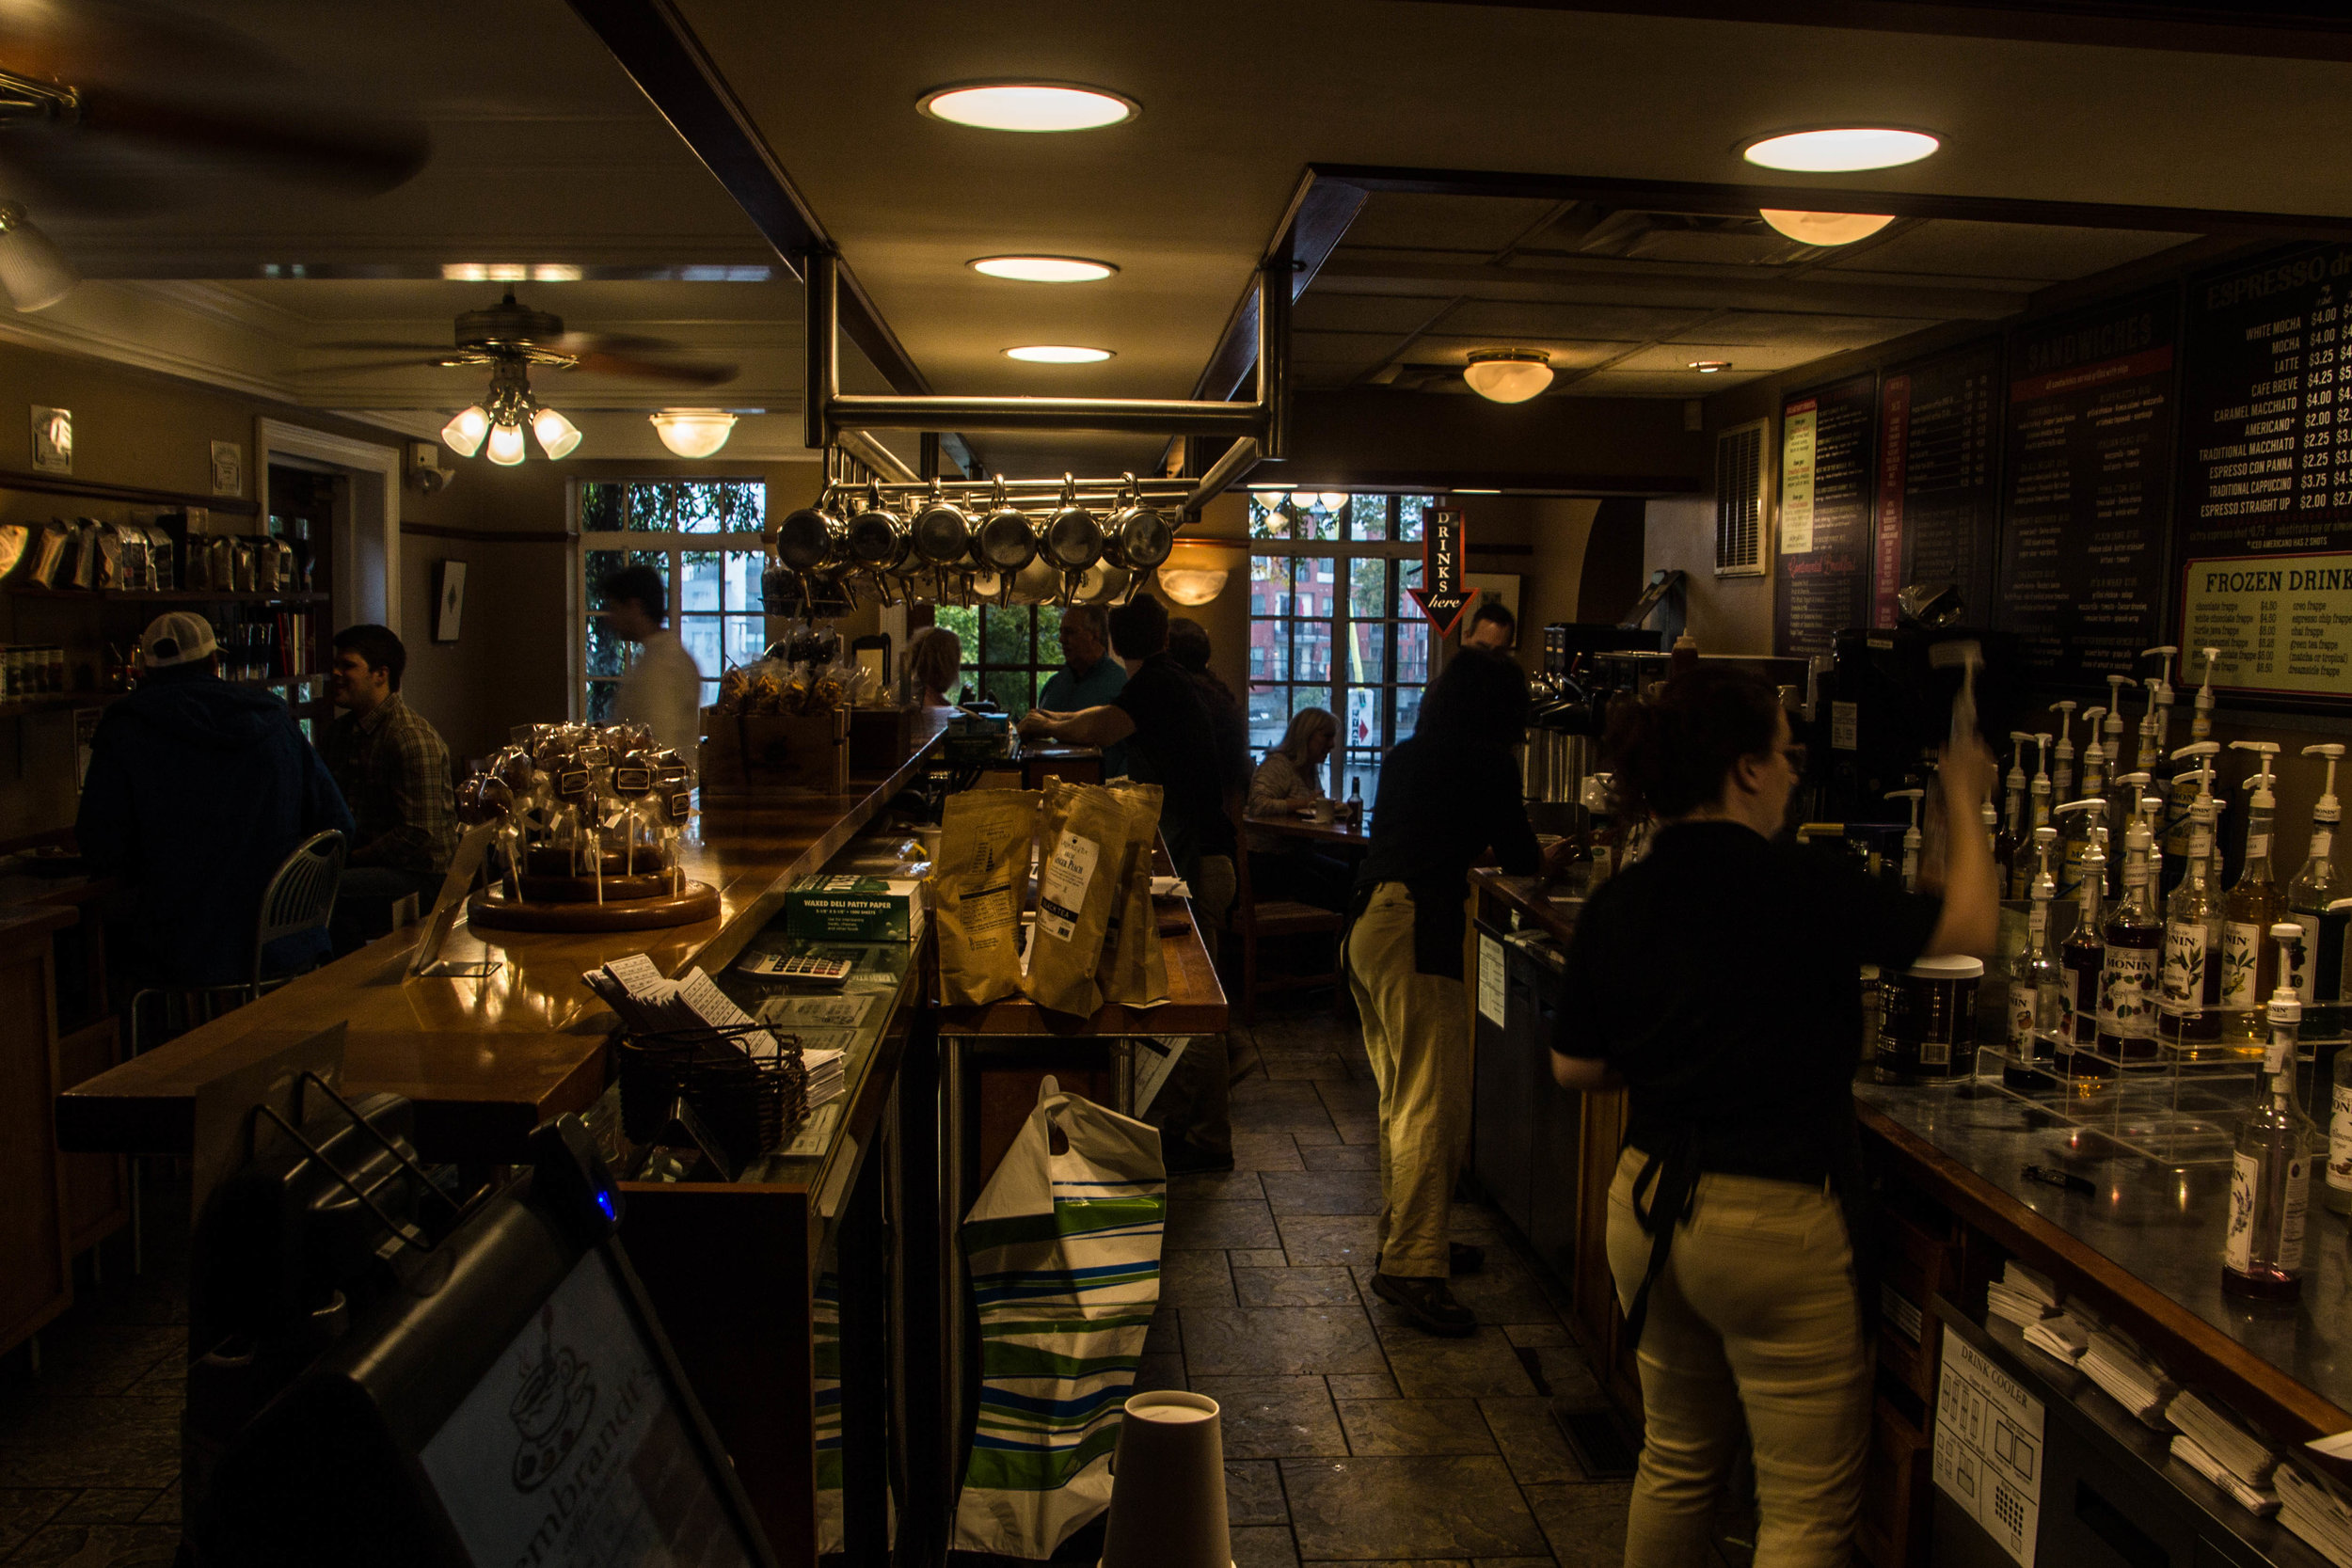 rembrandt's-chattanooga-coffee-shops-2.jpg